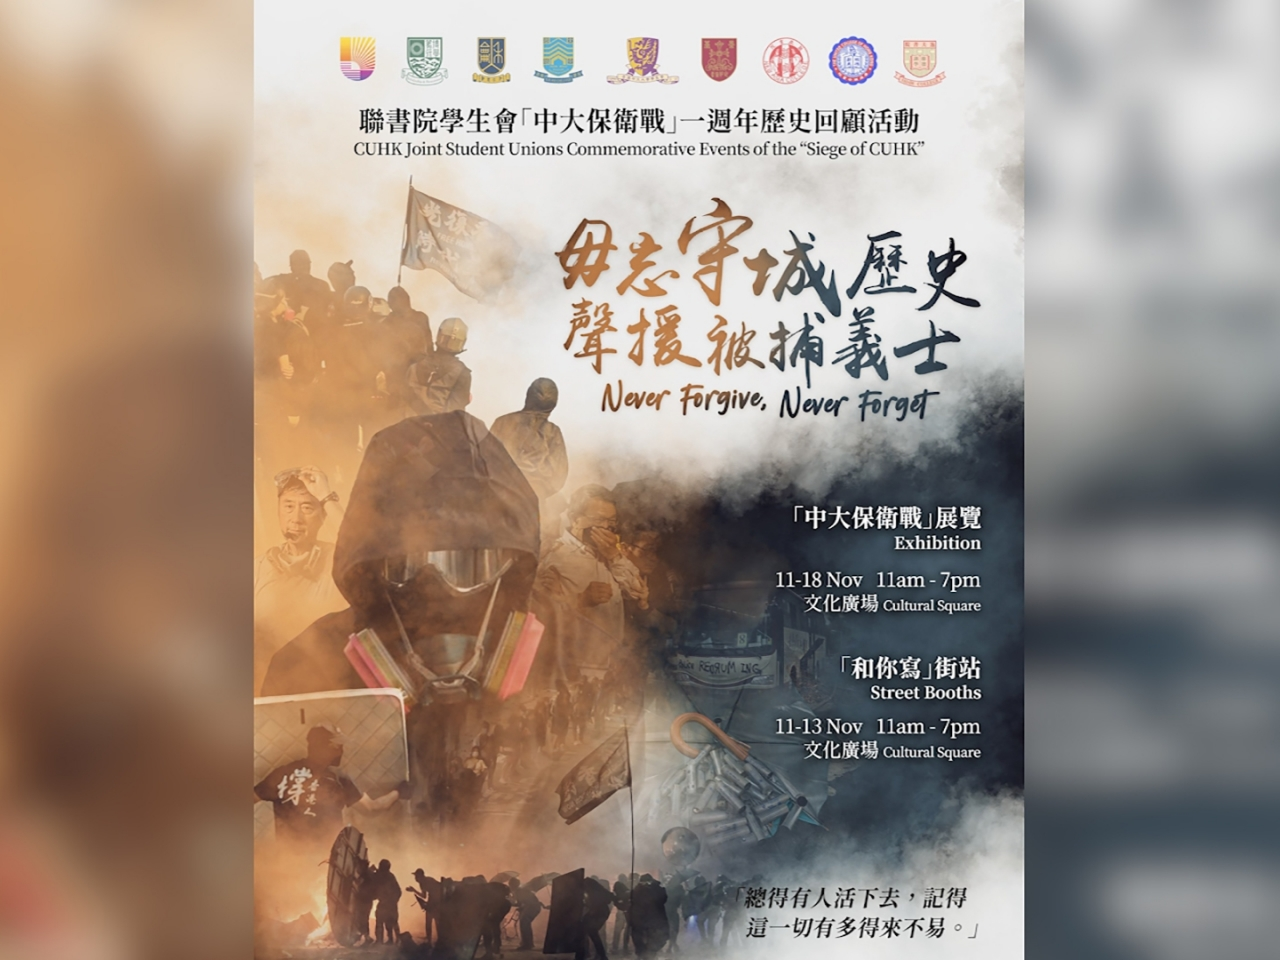 CUHK warns college students over 'unlawful' posters